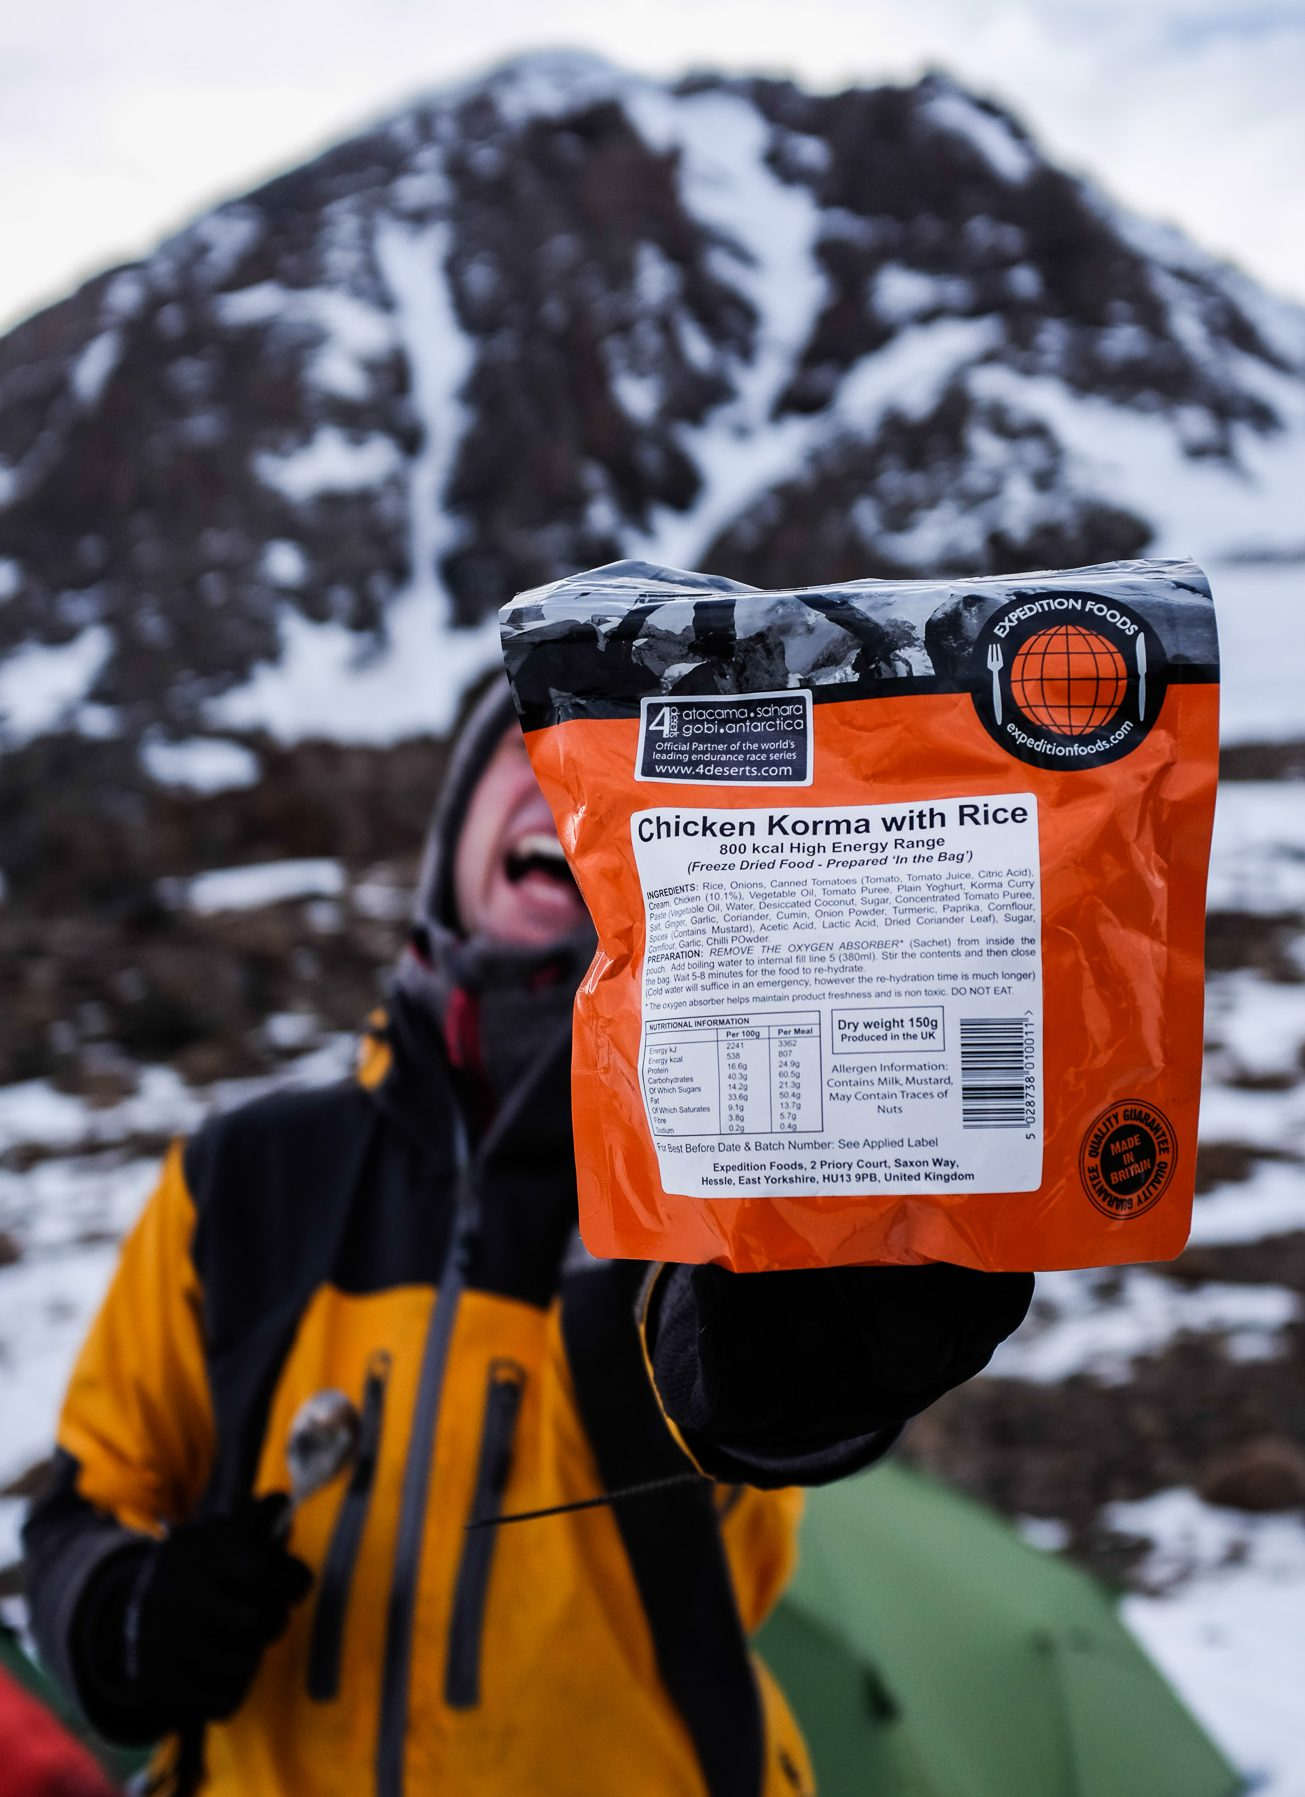 Lightweight, warm and sustaining, dehydrated meals from Expedition Foods are perfect for mountaineering expeditions